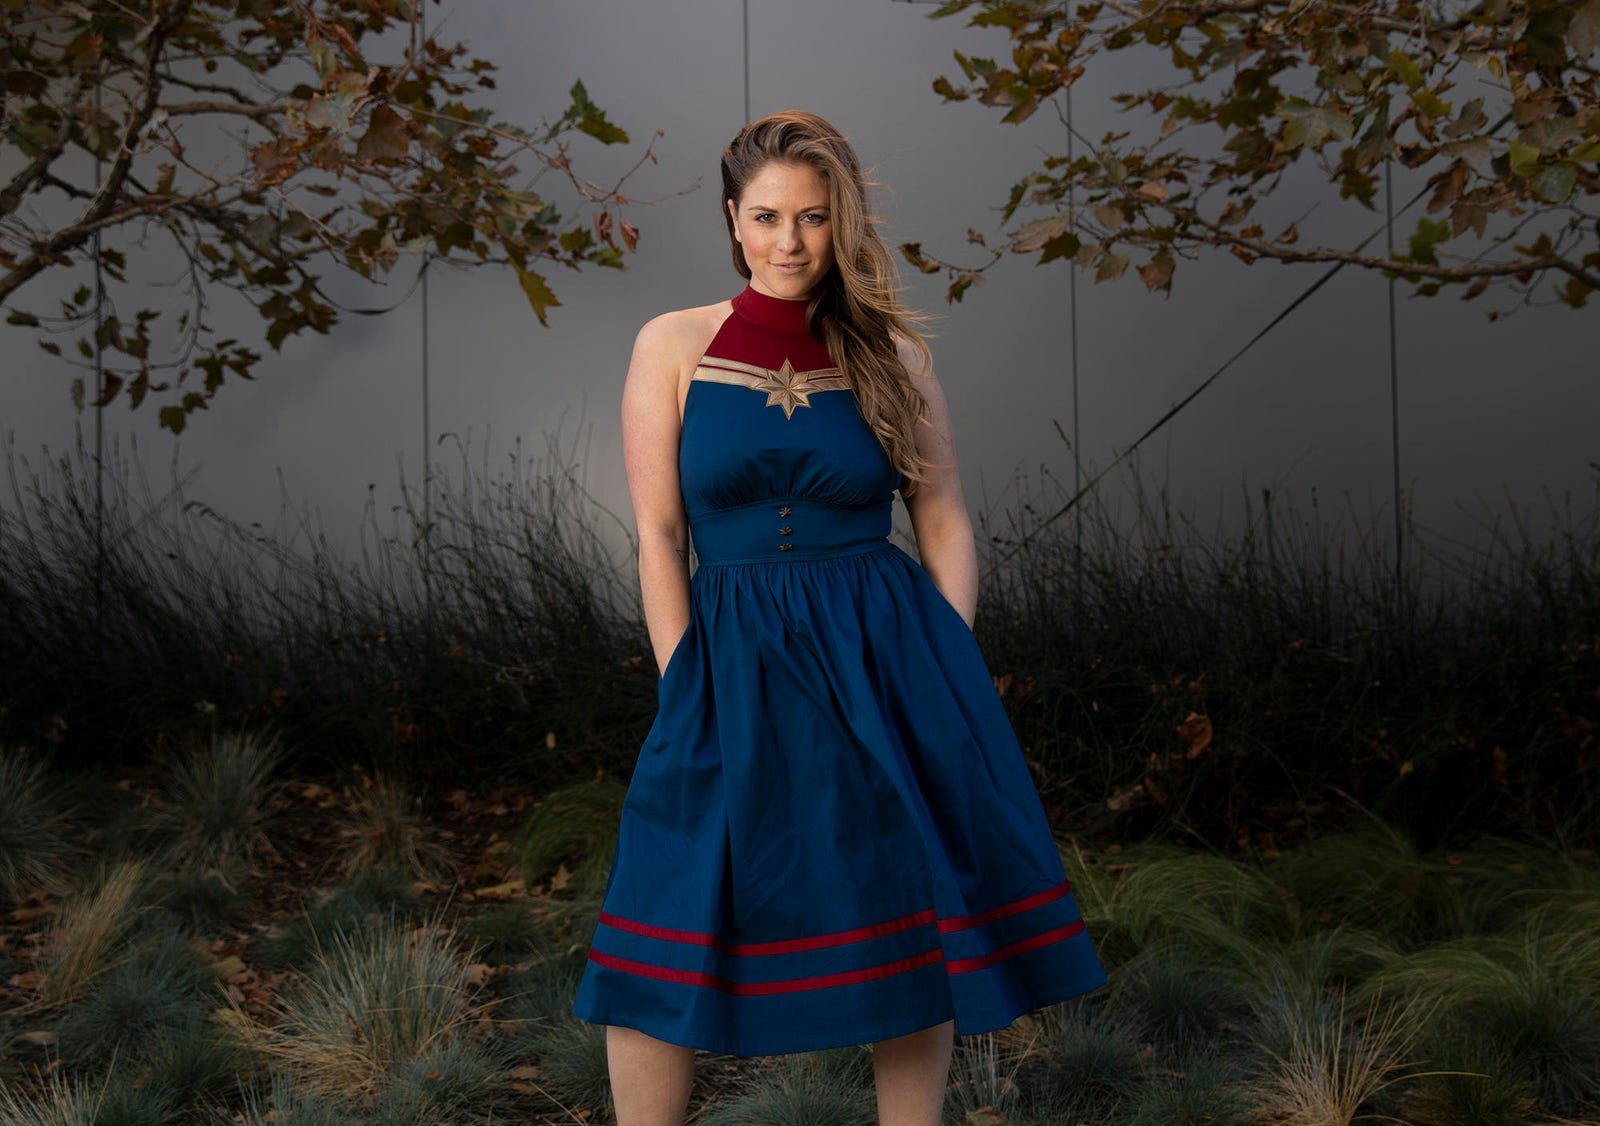 A Captain Marvel dress by Her Universe.